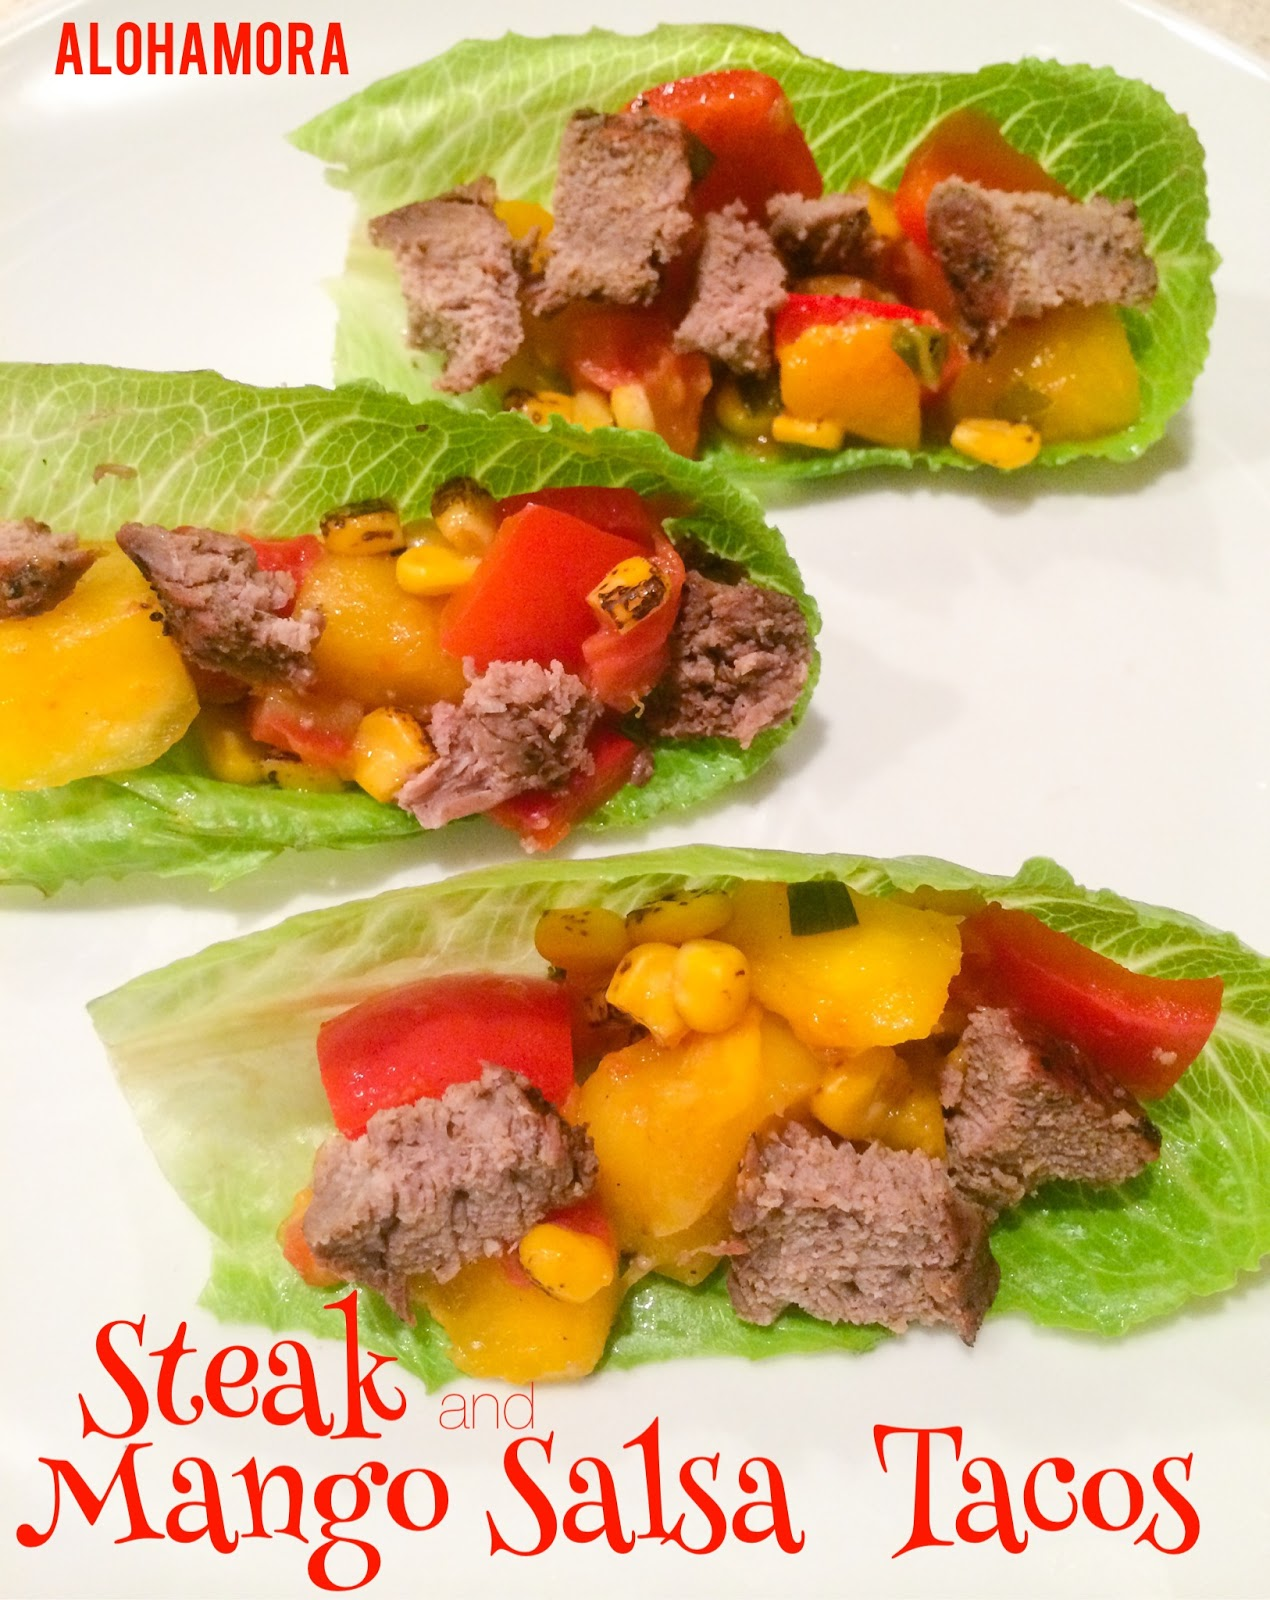 Steak and Mango Salsa Tacos are fast and easy to make on the grill.  This healthy diet friendly meal perfect for a summer/spring, or anytime of year with a grill pan.  Alohamora Open a Book http://www.alohamoraopenabook.blogspot.com/ gluten free, dairy free, nut free, healthy, delicious, fast, quick, easy